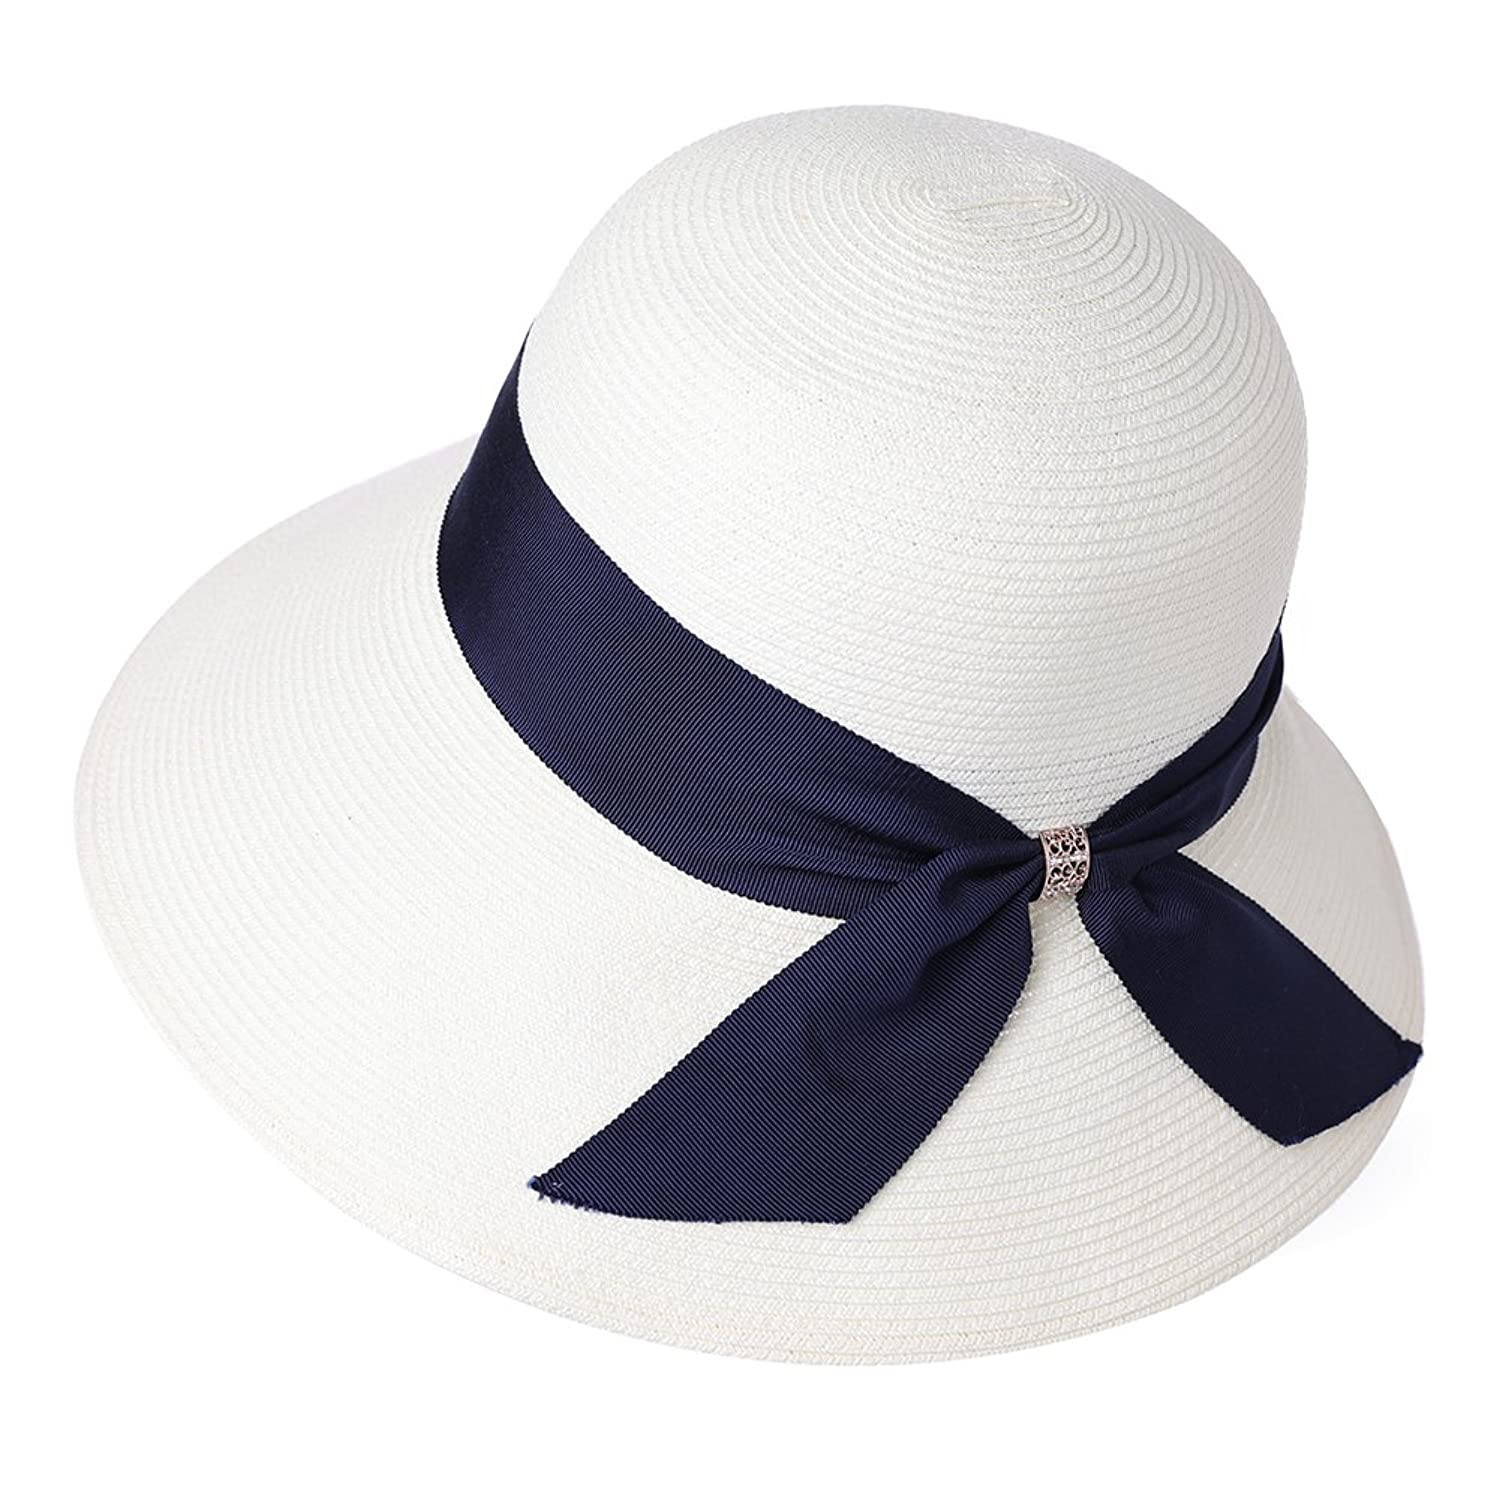 790be0b1a233f5 1920s Style Hats SiggiHat Packable UPF Straw Sunhat Women Summer Beach Wide  Brim Fedora Travel Hat